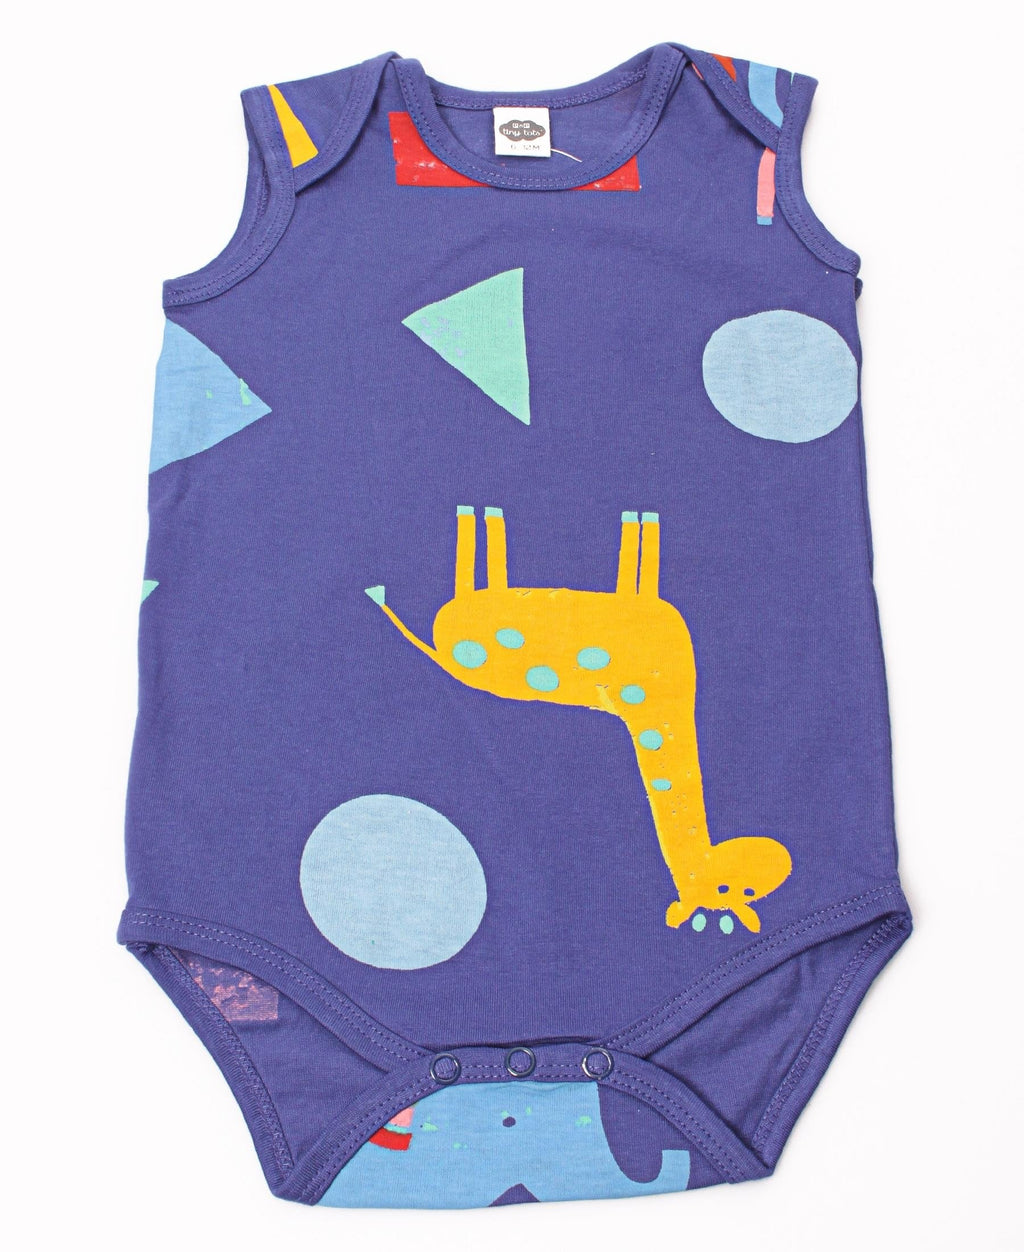 Infants Animal Print Sleeveless Cotton Romper - Navy